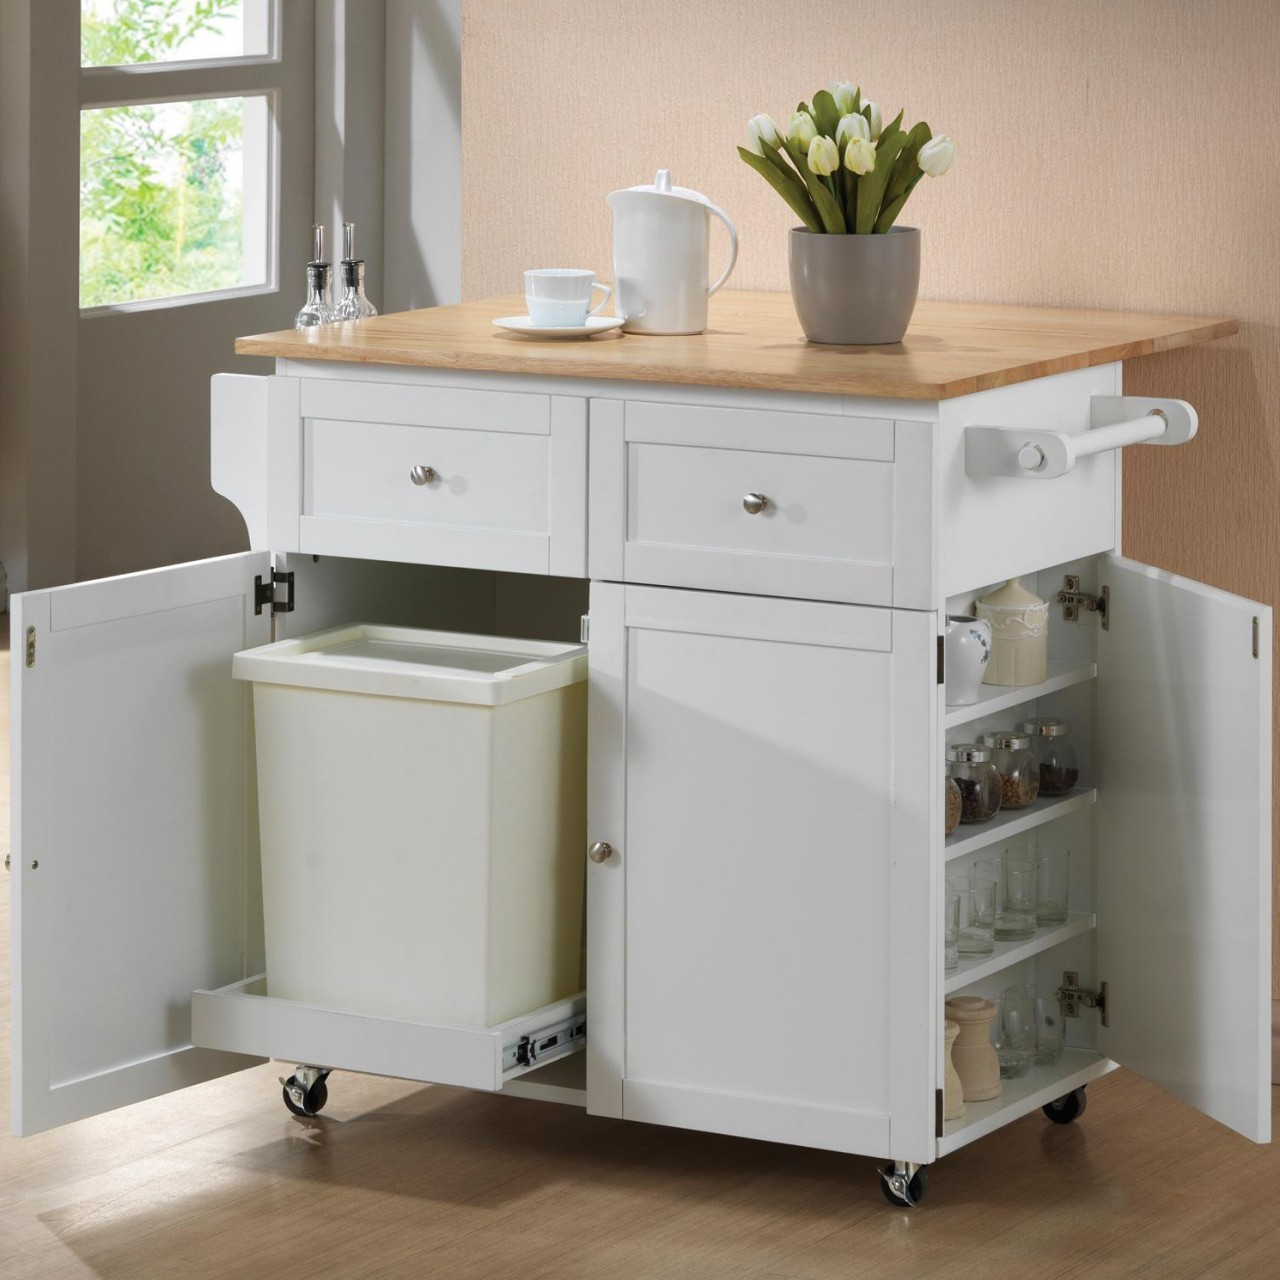 image gallery kitchen islands and trolleys jackson kitchen cart modern kitchen islands and